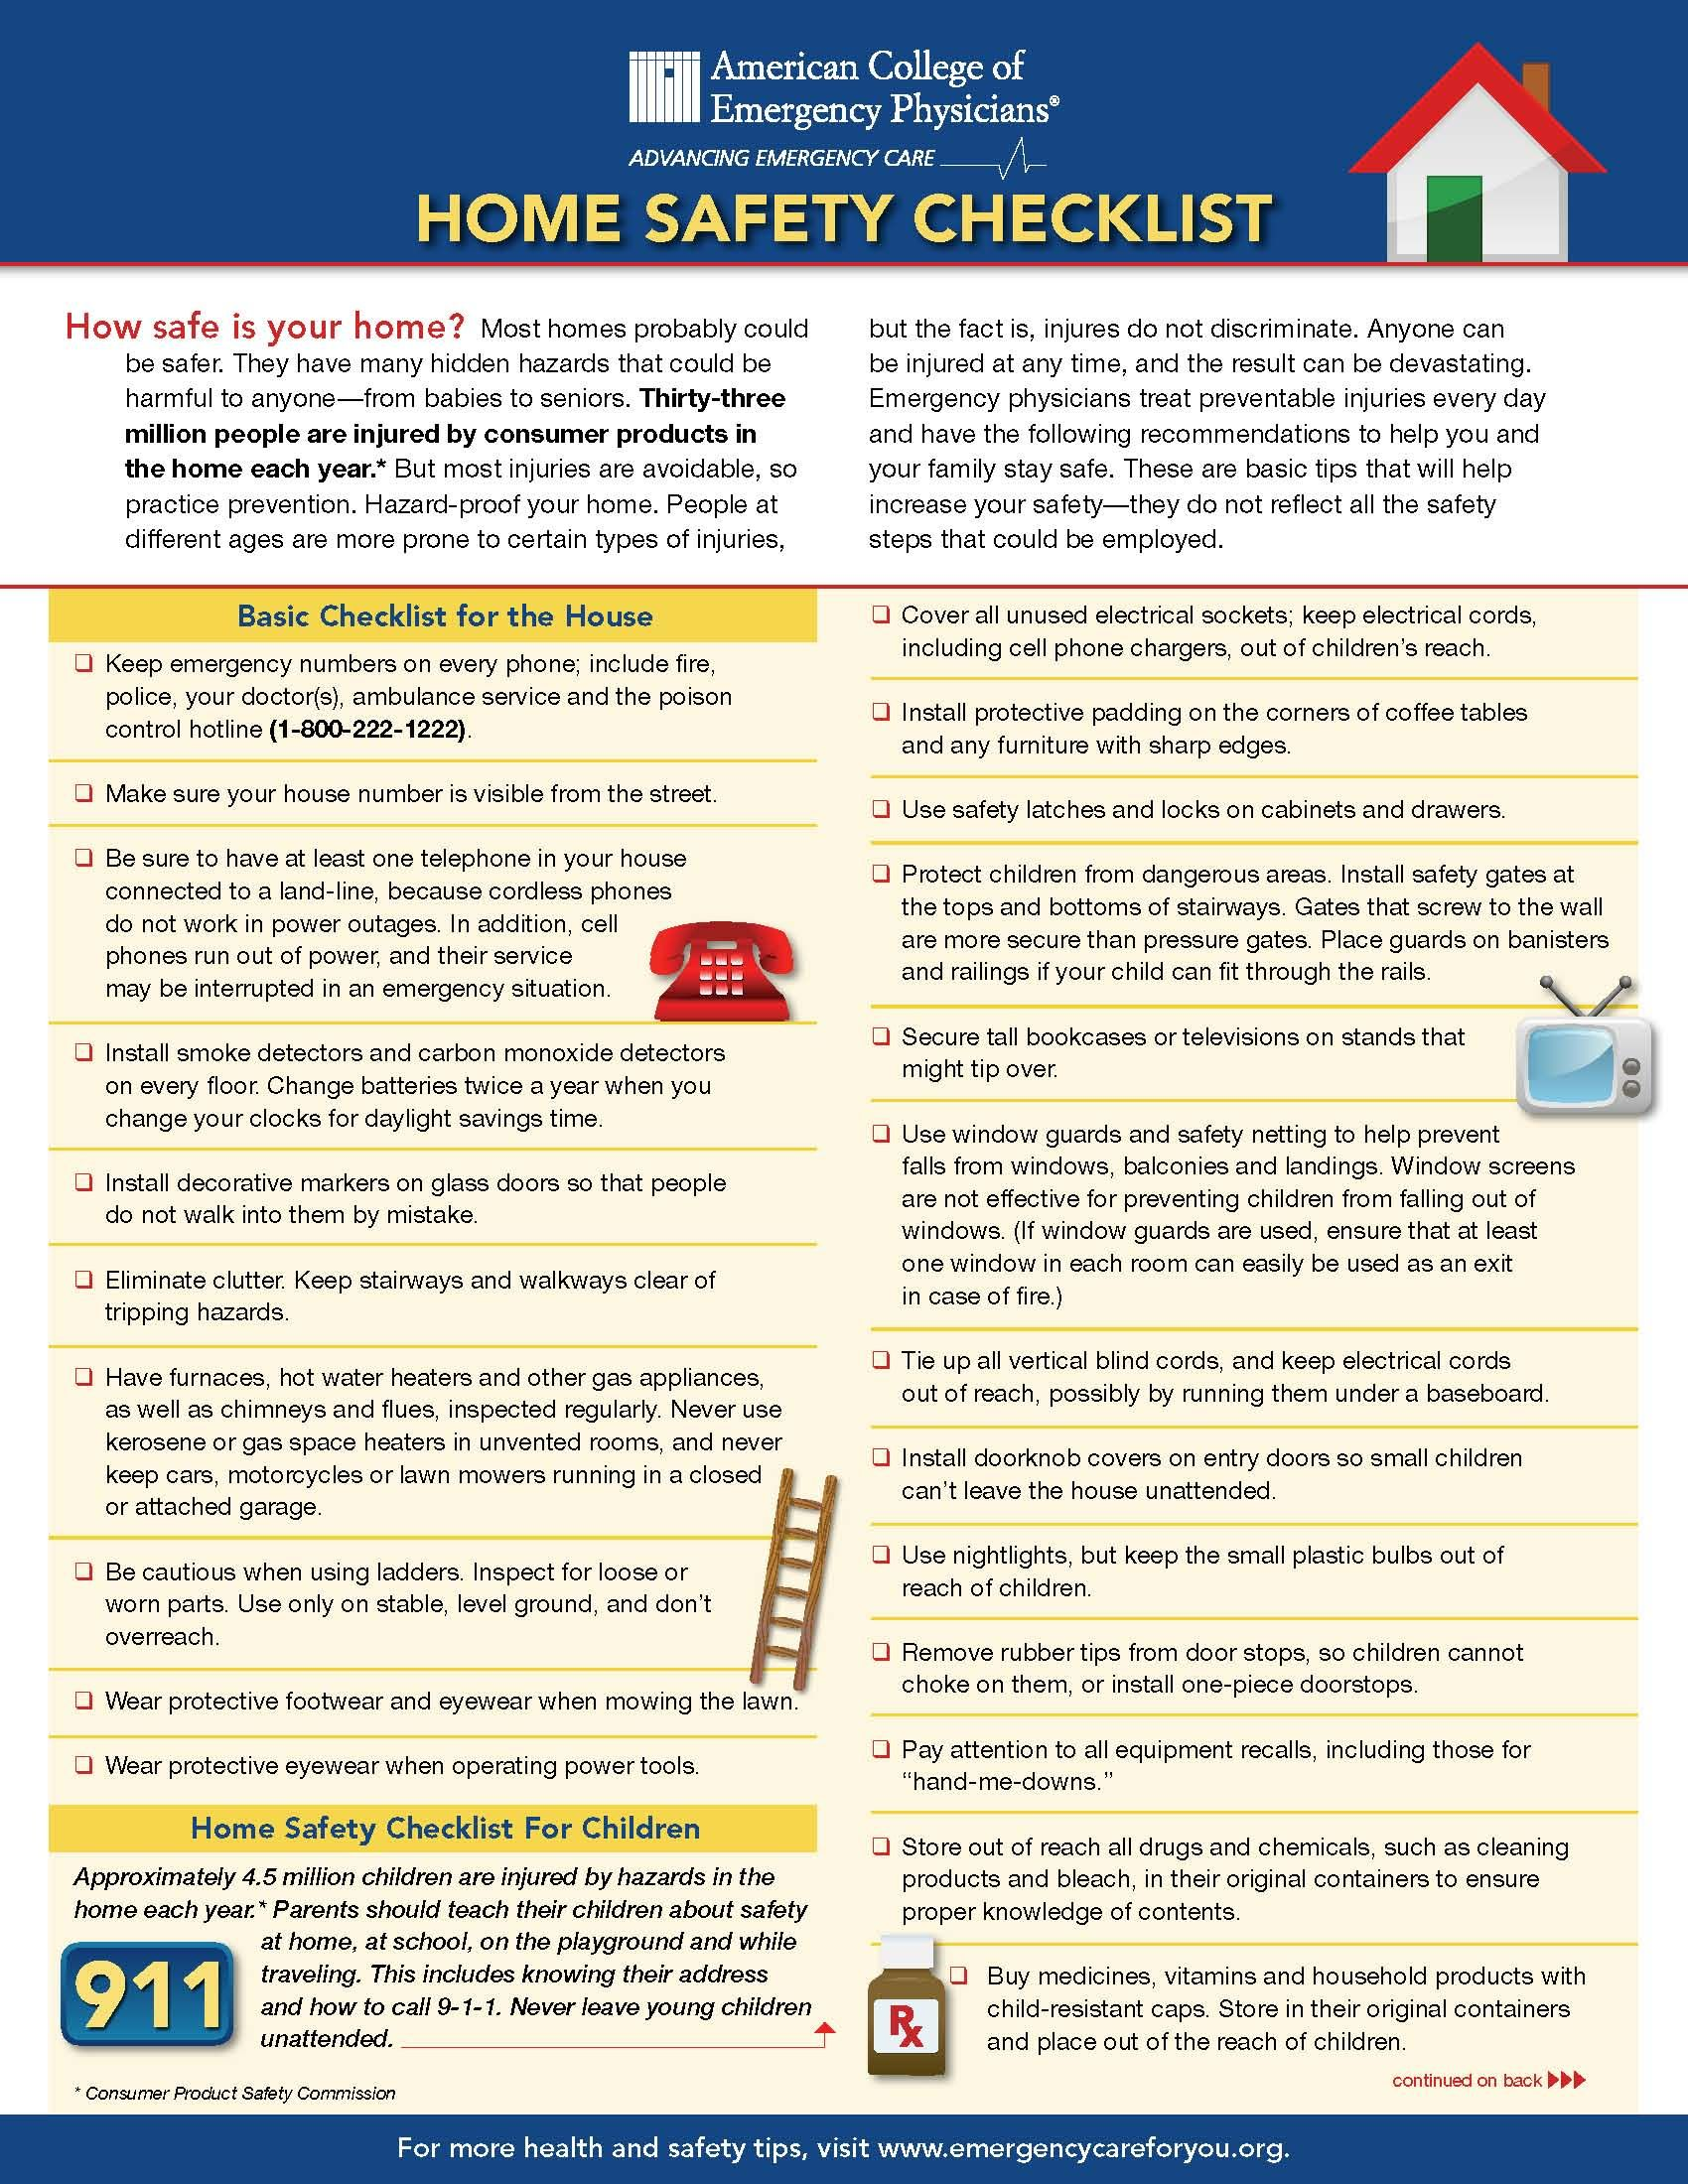 Home Safety Checklist (page 1 of 2). Home safety